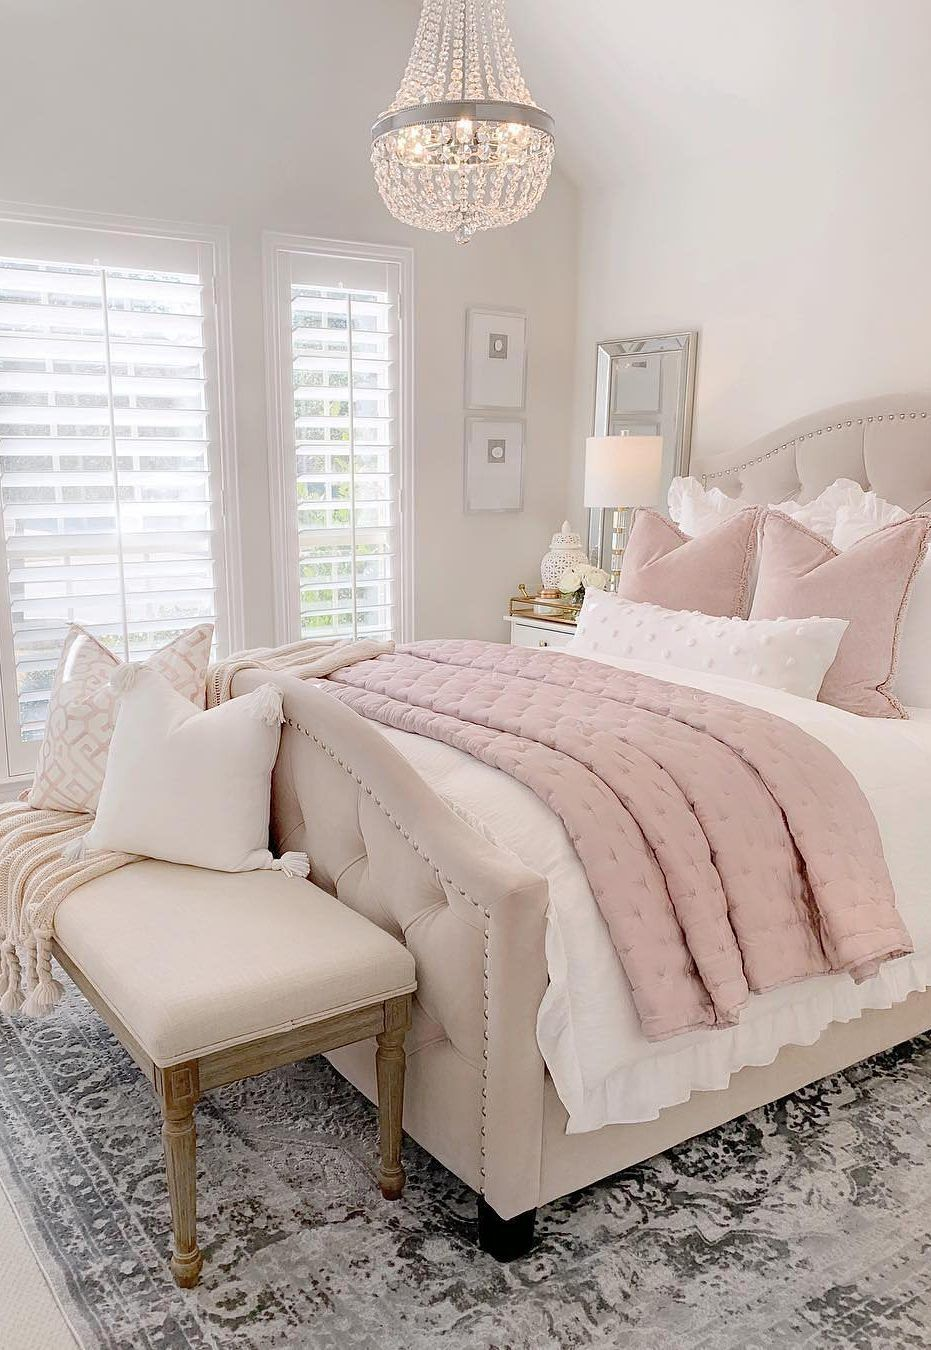 40 Most Popular And Amazing Bedroom Design Ideas For This Year Part 24 Bedroom Designs For Couples Amazing Bedroom Designs Bedroom Decor